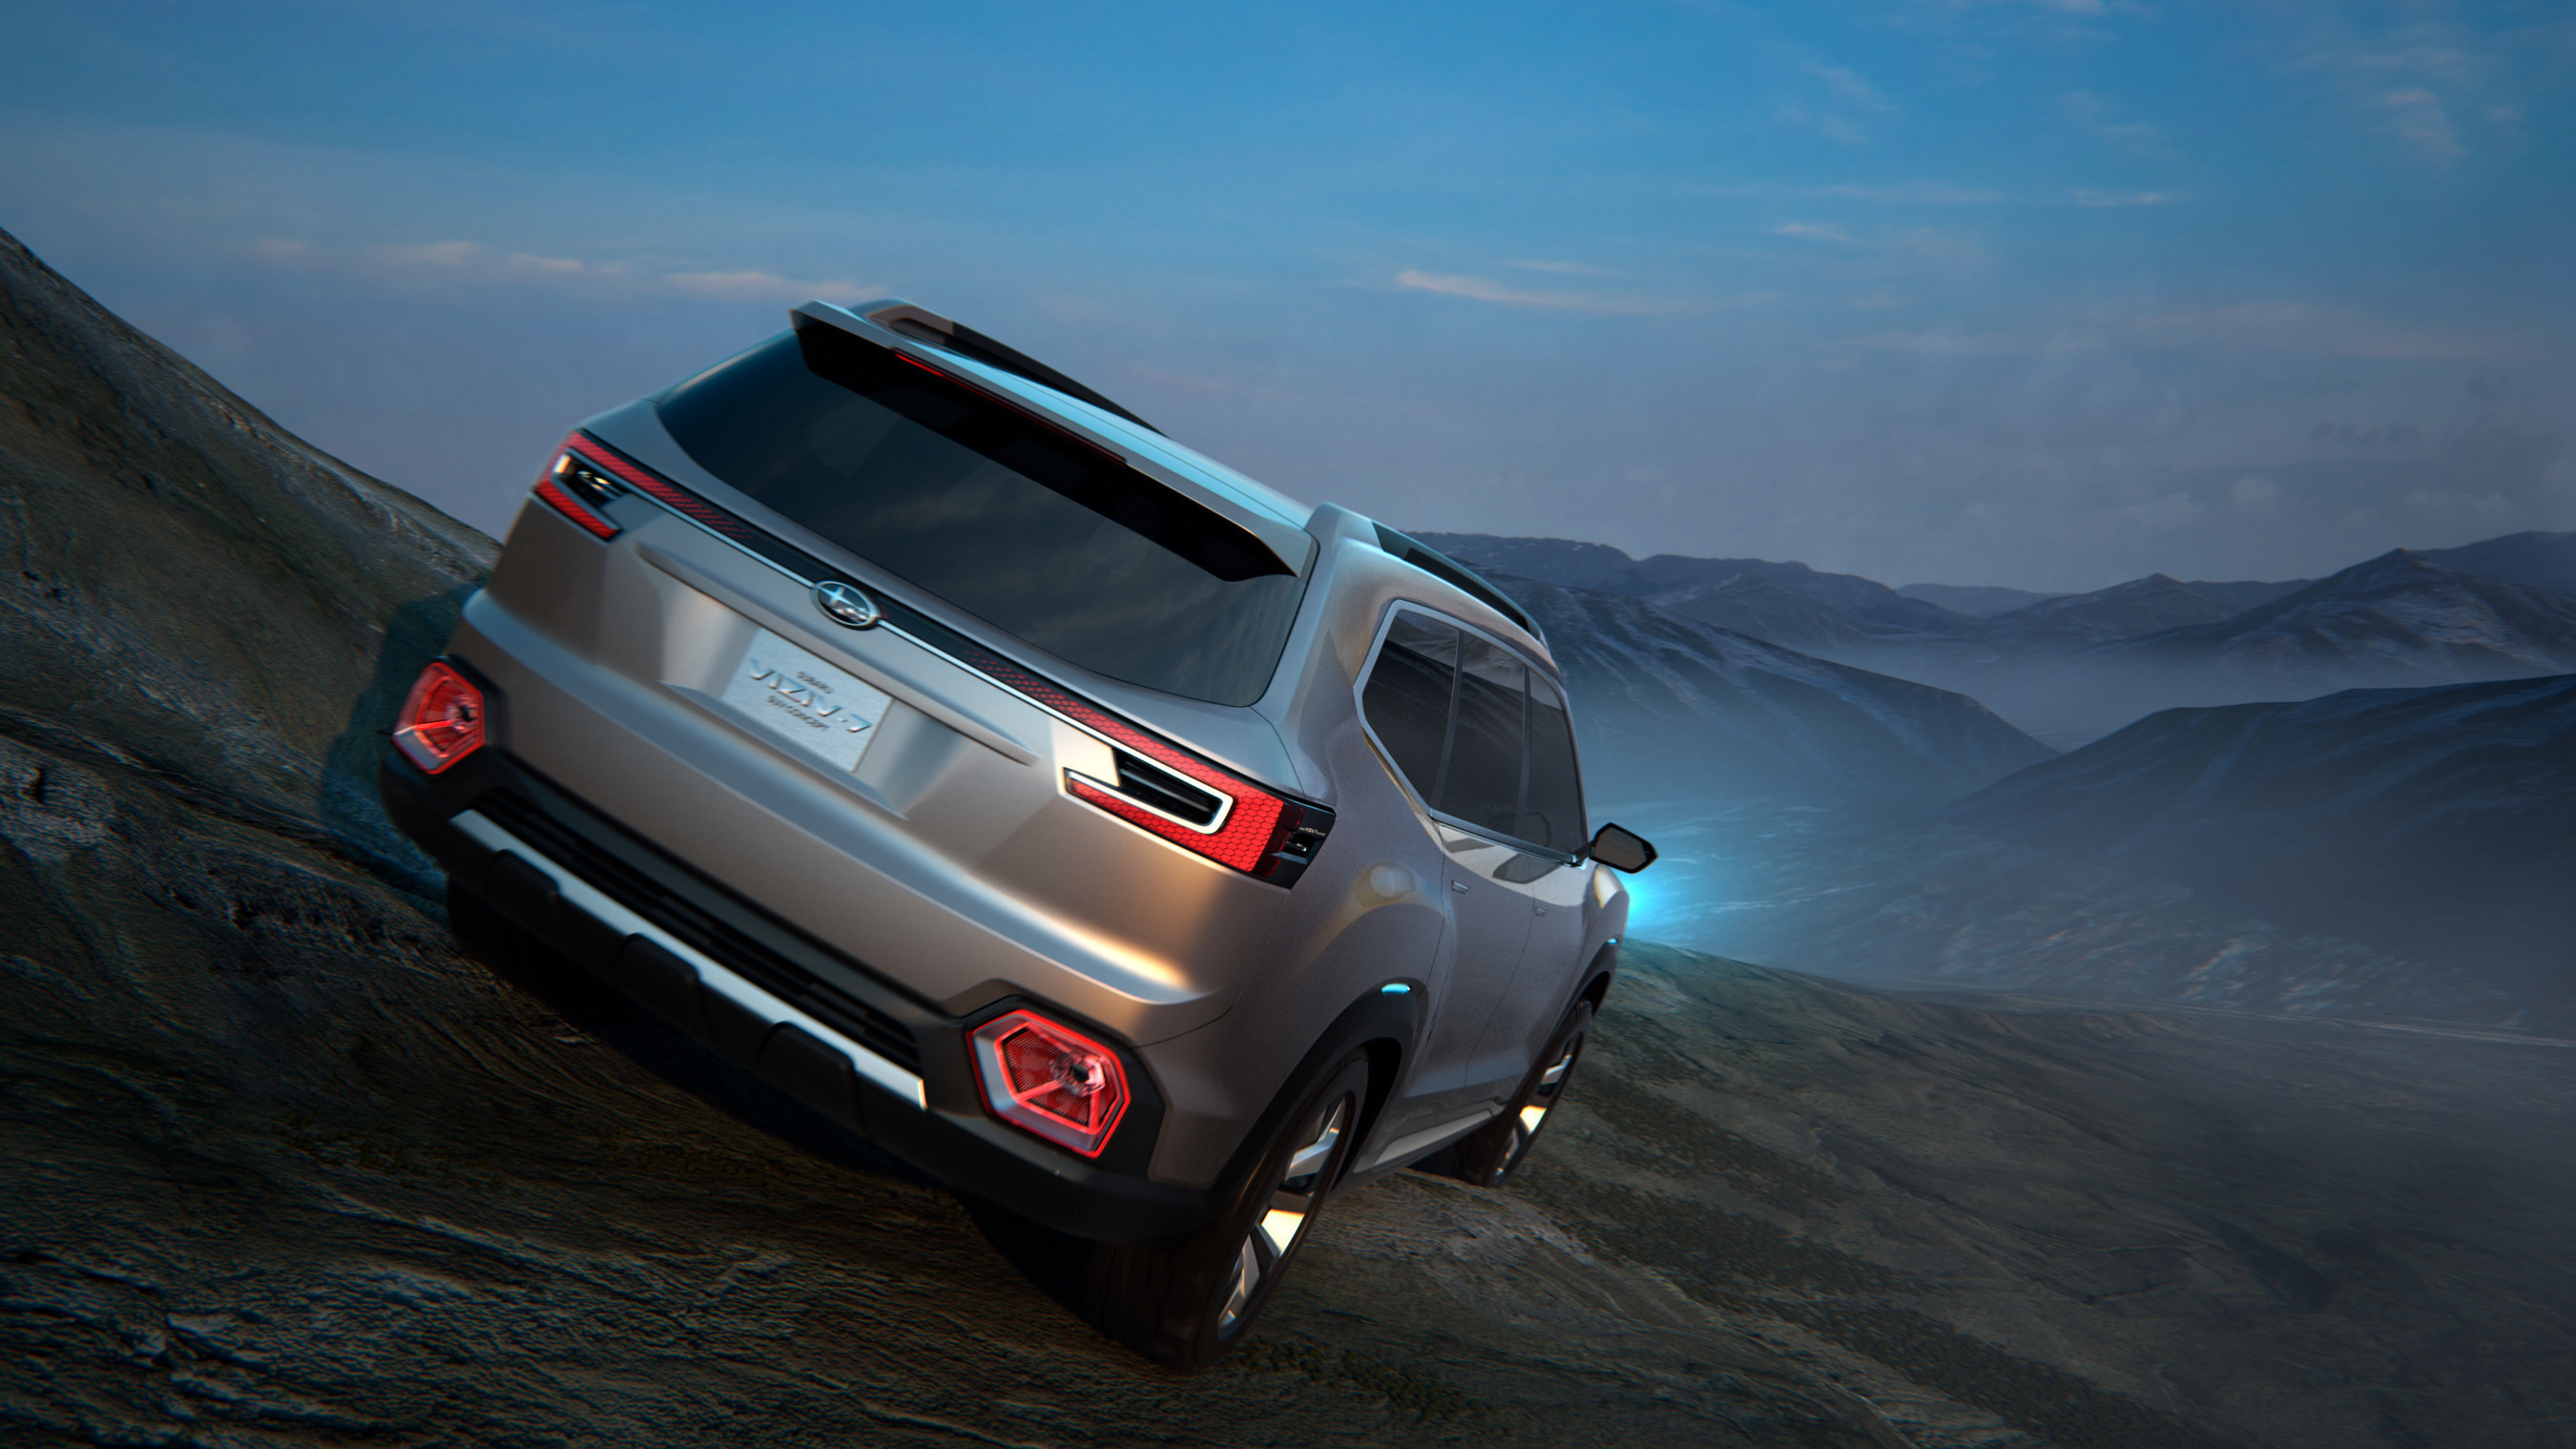 Subaru VIZIV 7 SUV Concept Debut at Los Angeles Auto Show